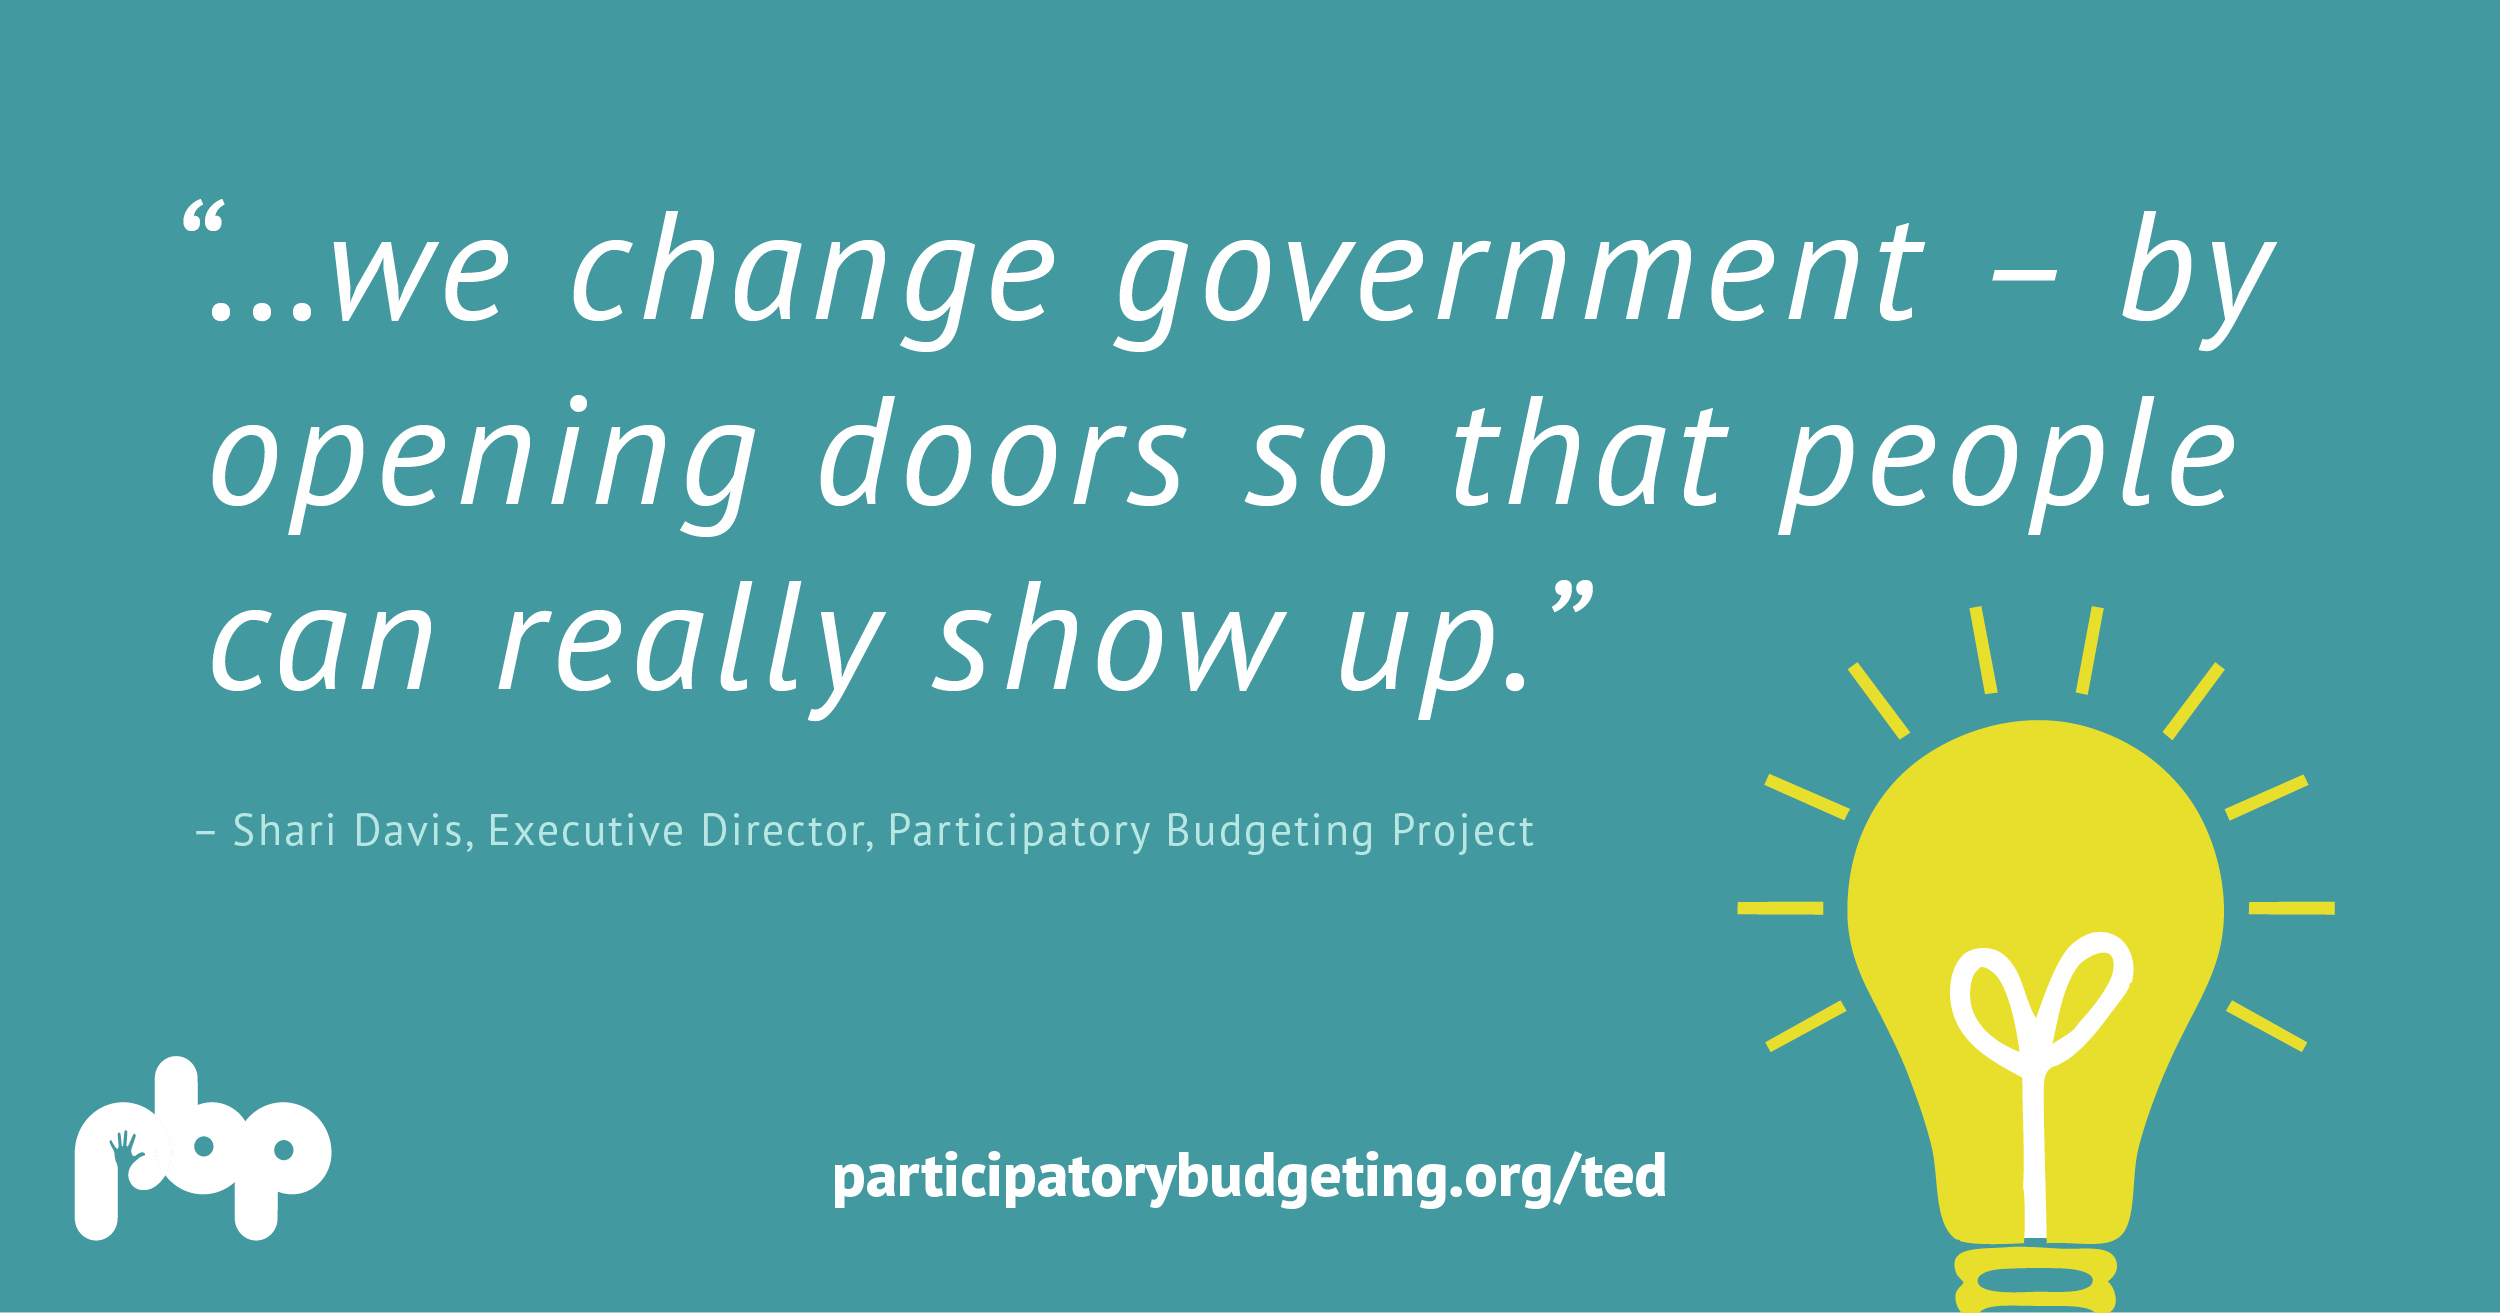 ...we change government - by opening doors so that people can really show up. - Shari Davis